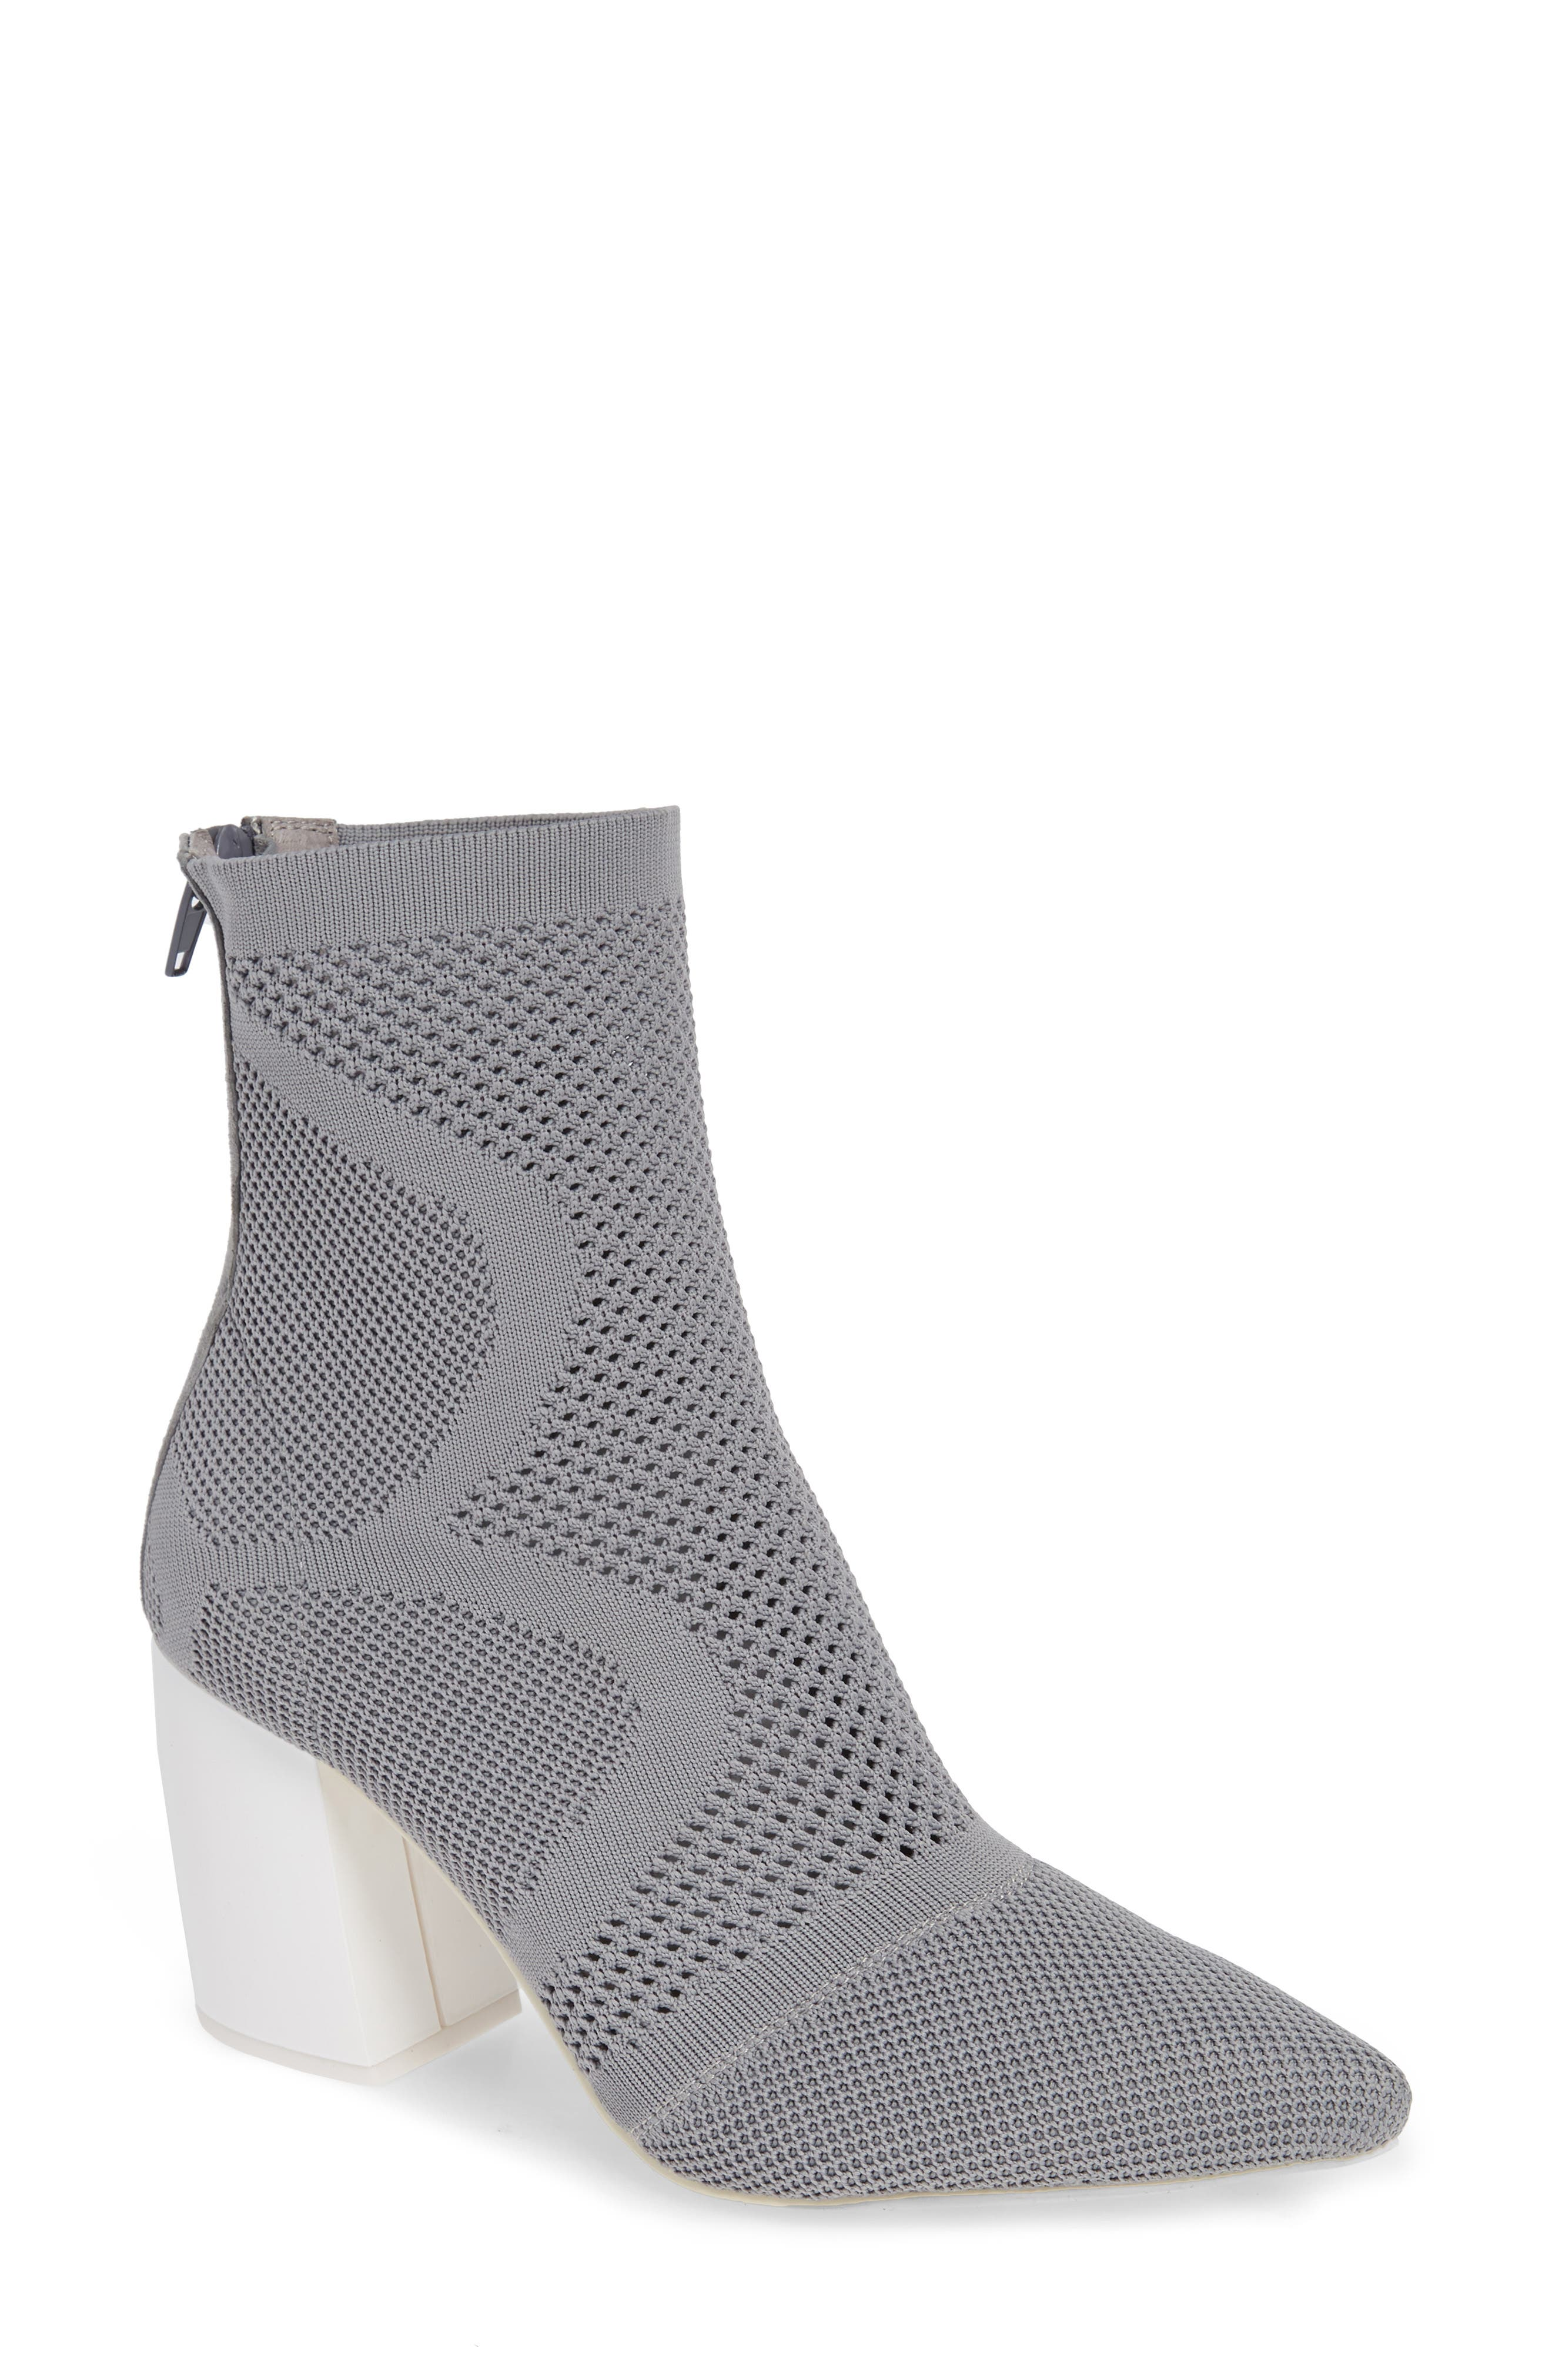 Final Bootie,                         Main,                         color, GREY WHITE